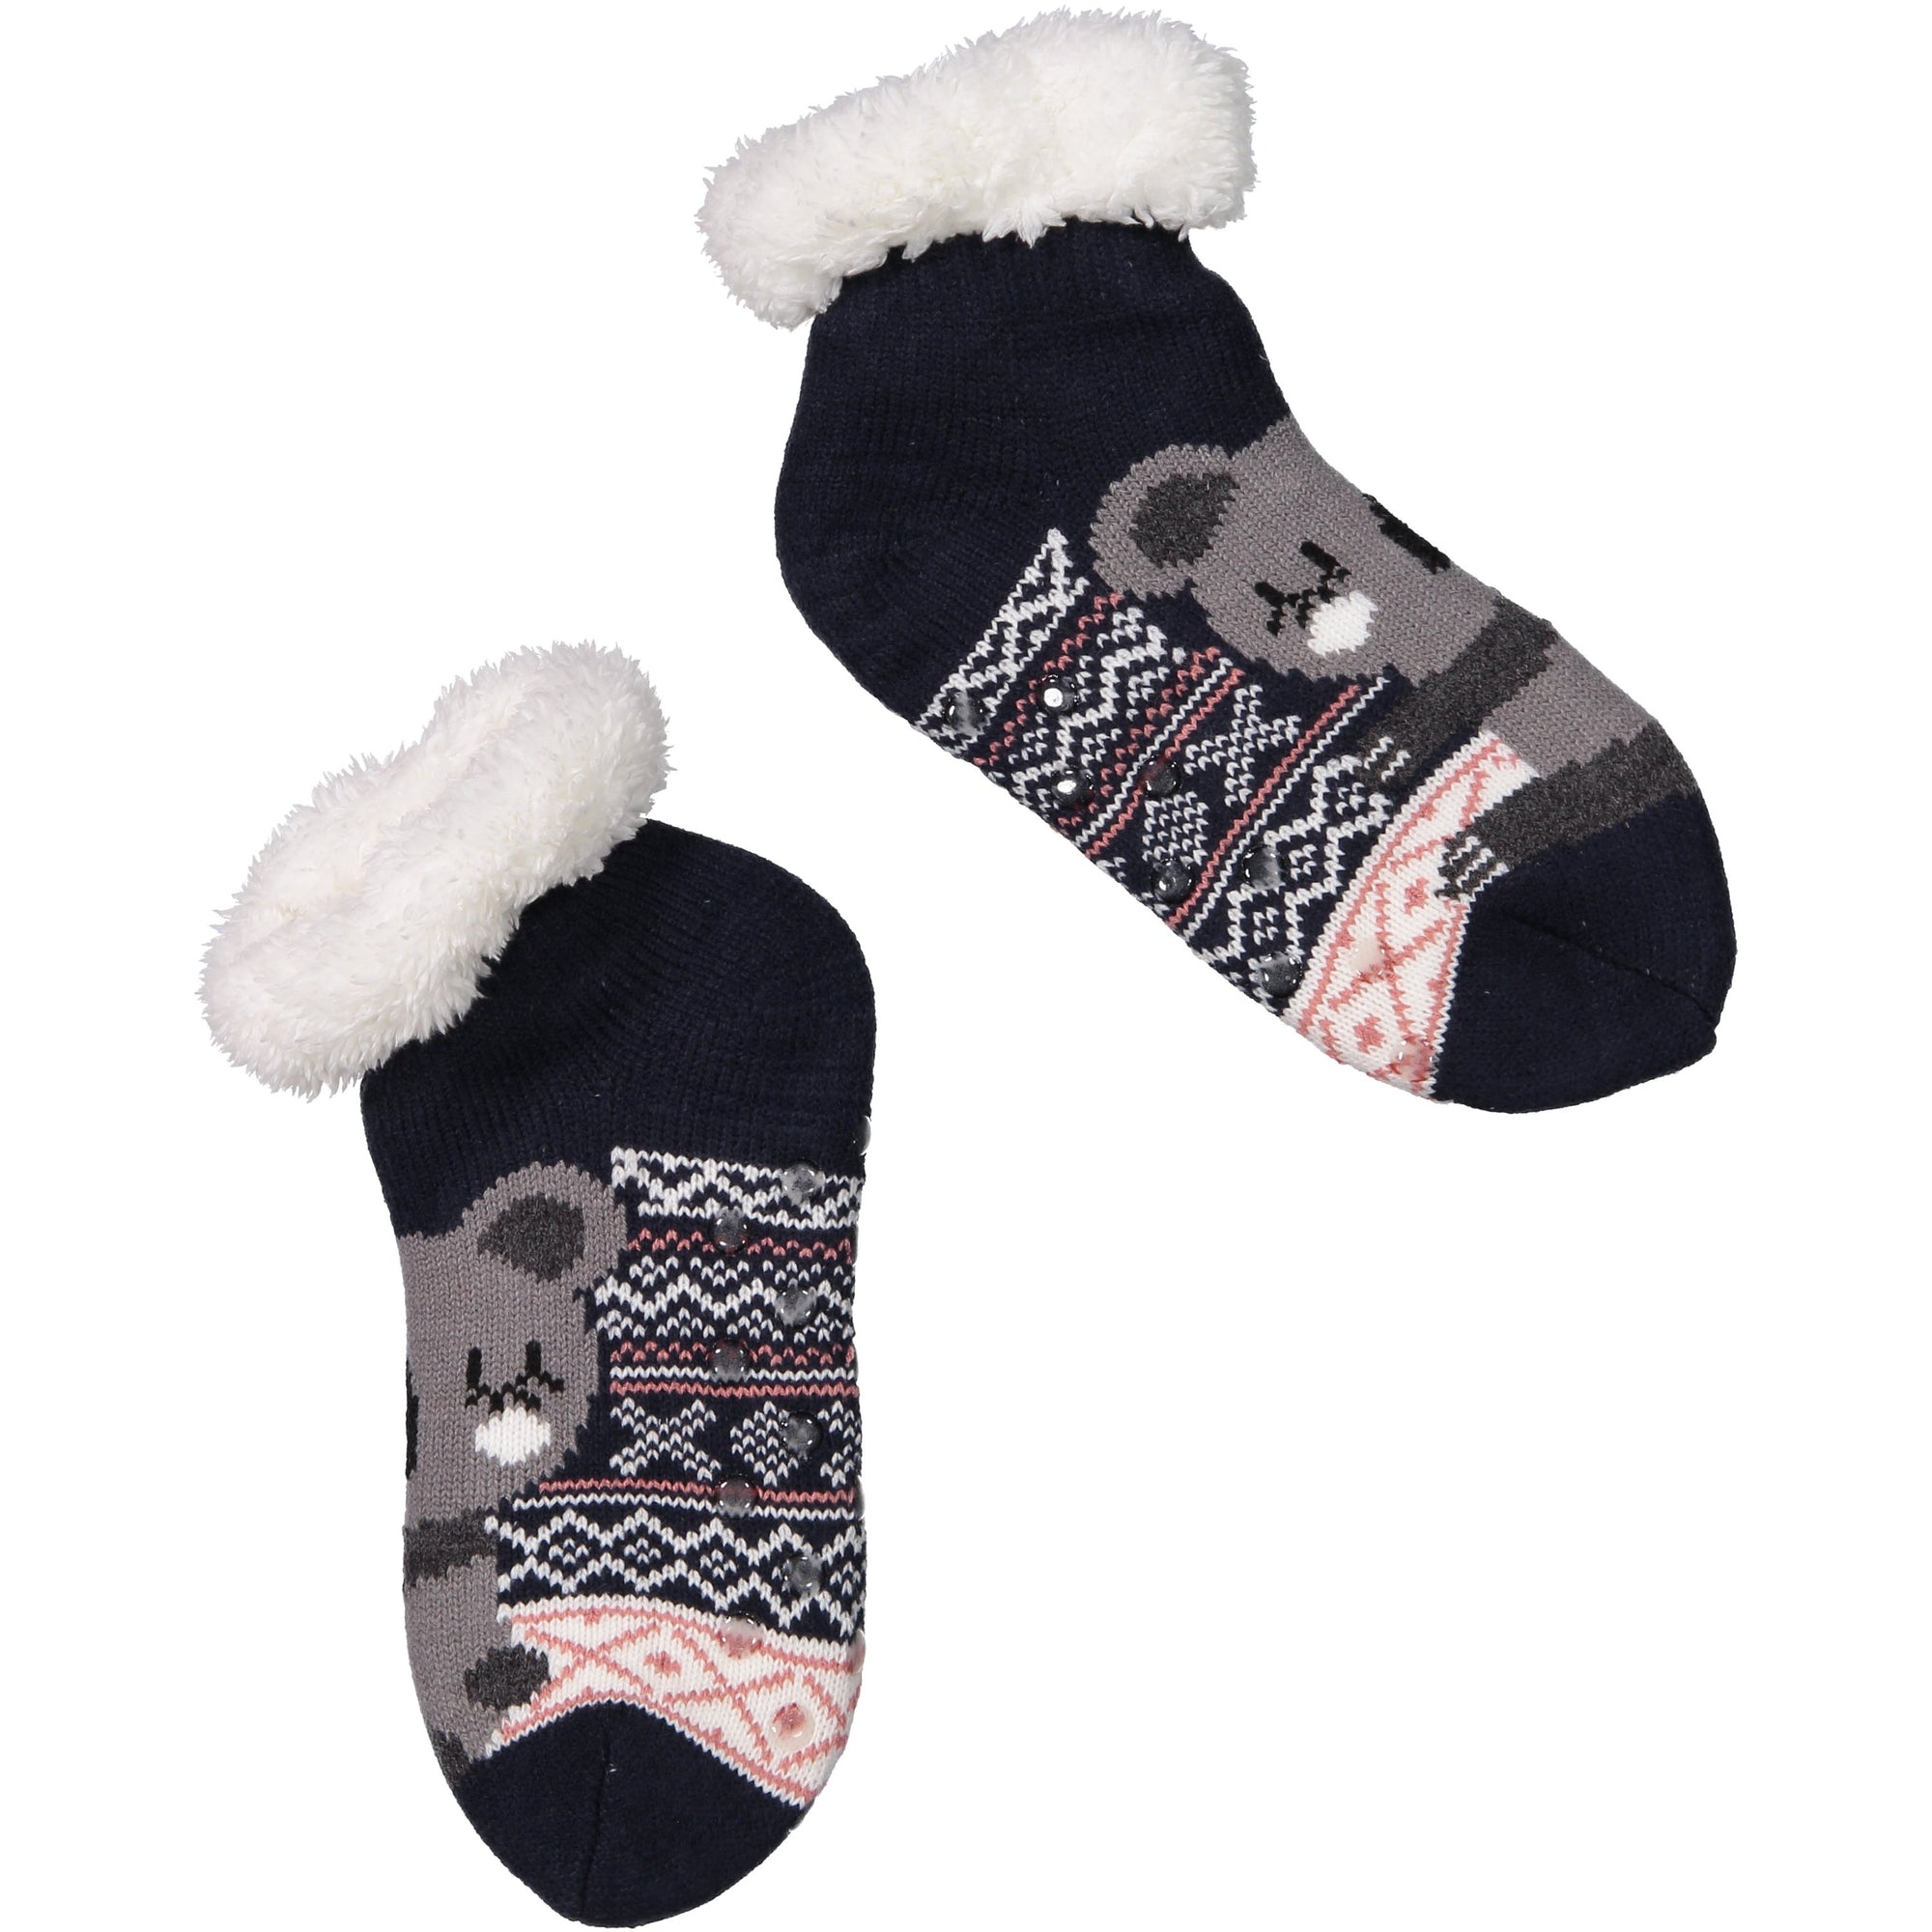 Women's Cozy Koala Slipper Socks with Sherpa Lining